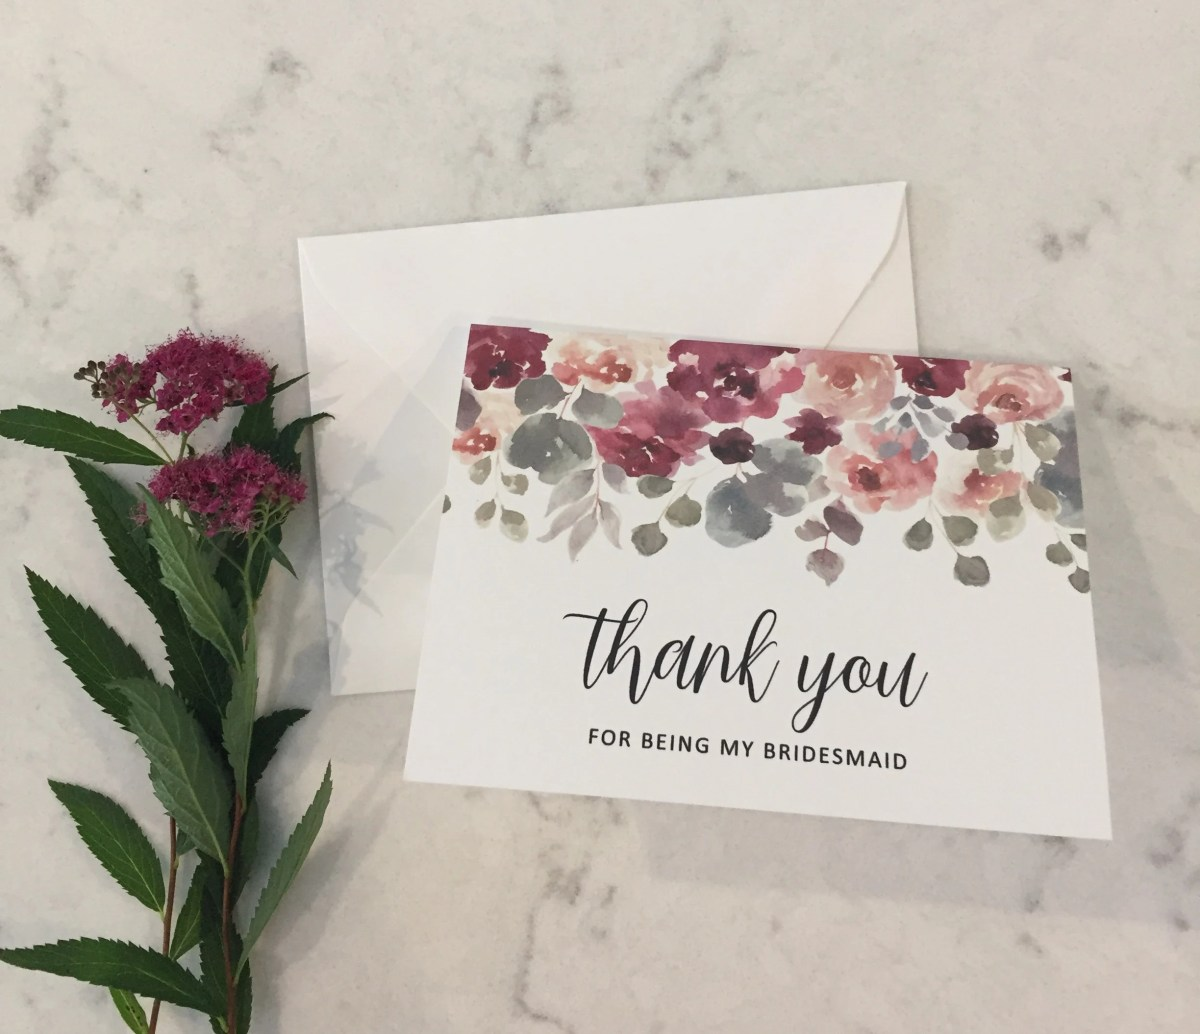 Bridesmaid Thank You Card | Thank You for being my Bridesmaid | Floral Thank You Card | Wedding Thank You | Wedding Card | Bridesmaid Gift